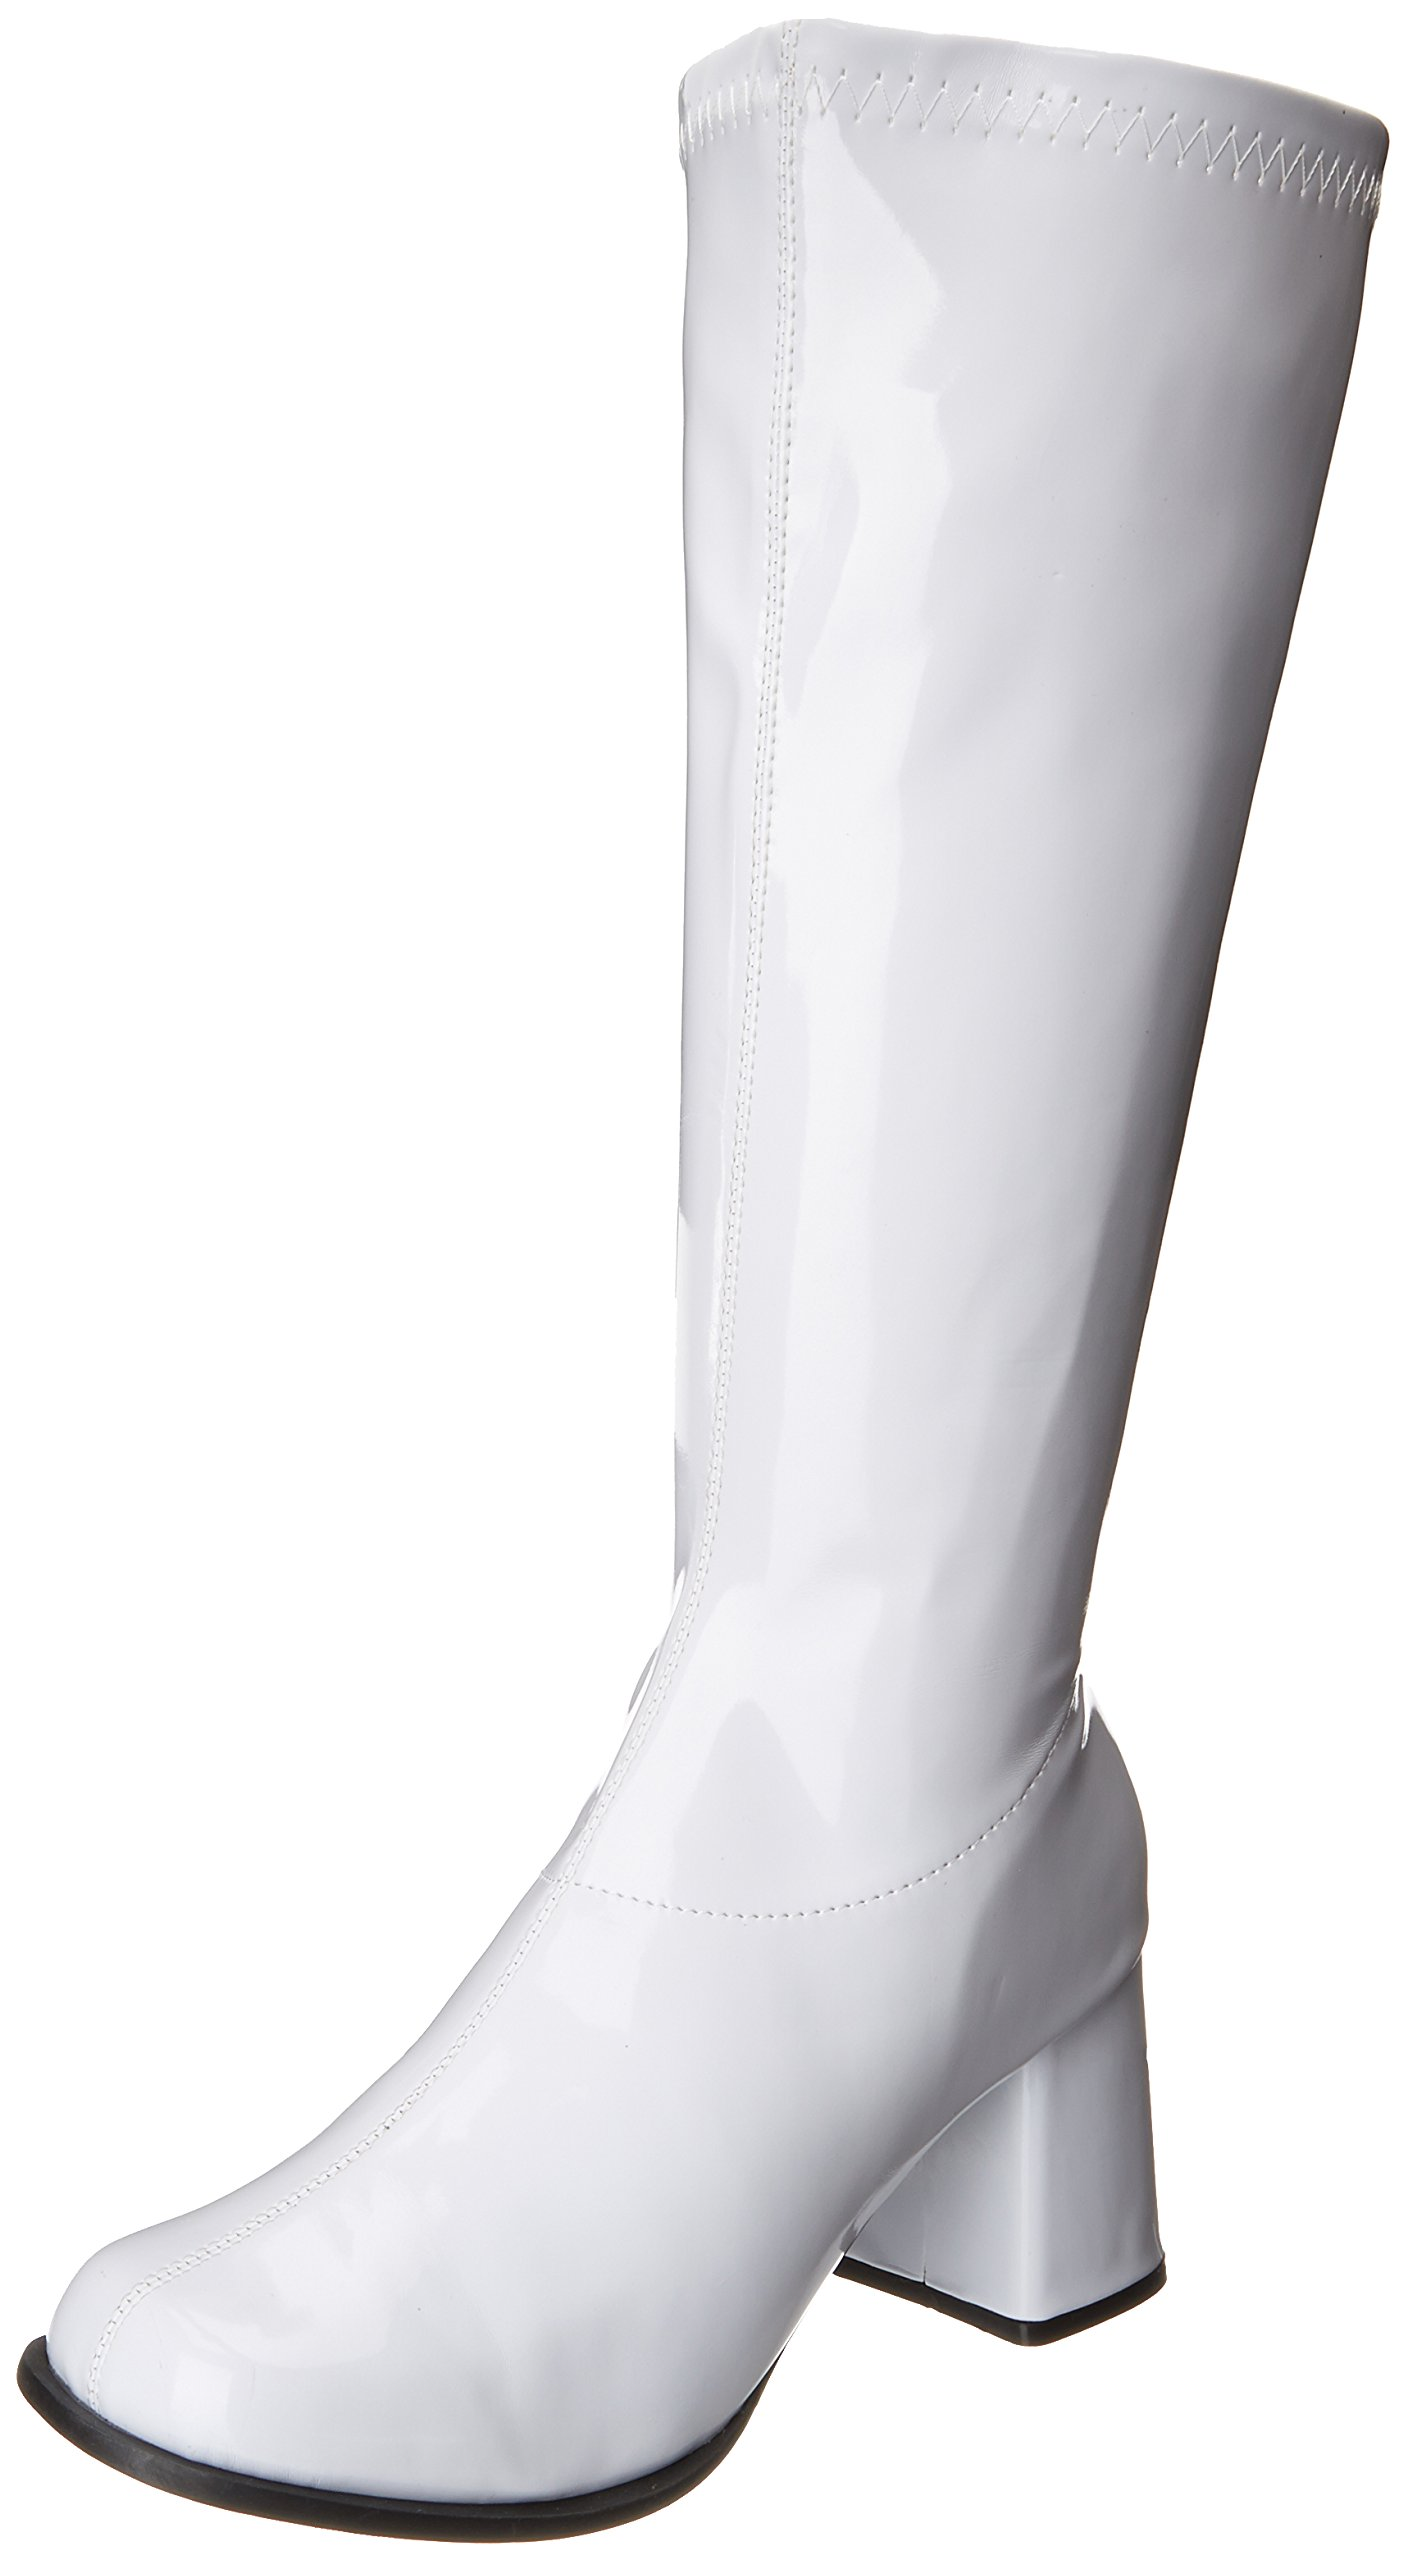 Gogo (White) Adult Boots [Wide Calf], 9 M by Ellie Shoes